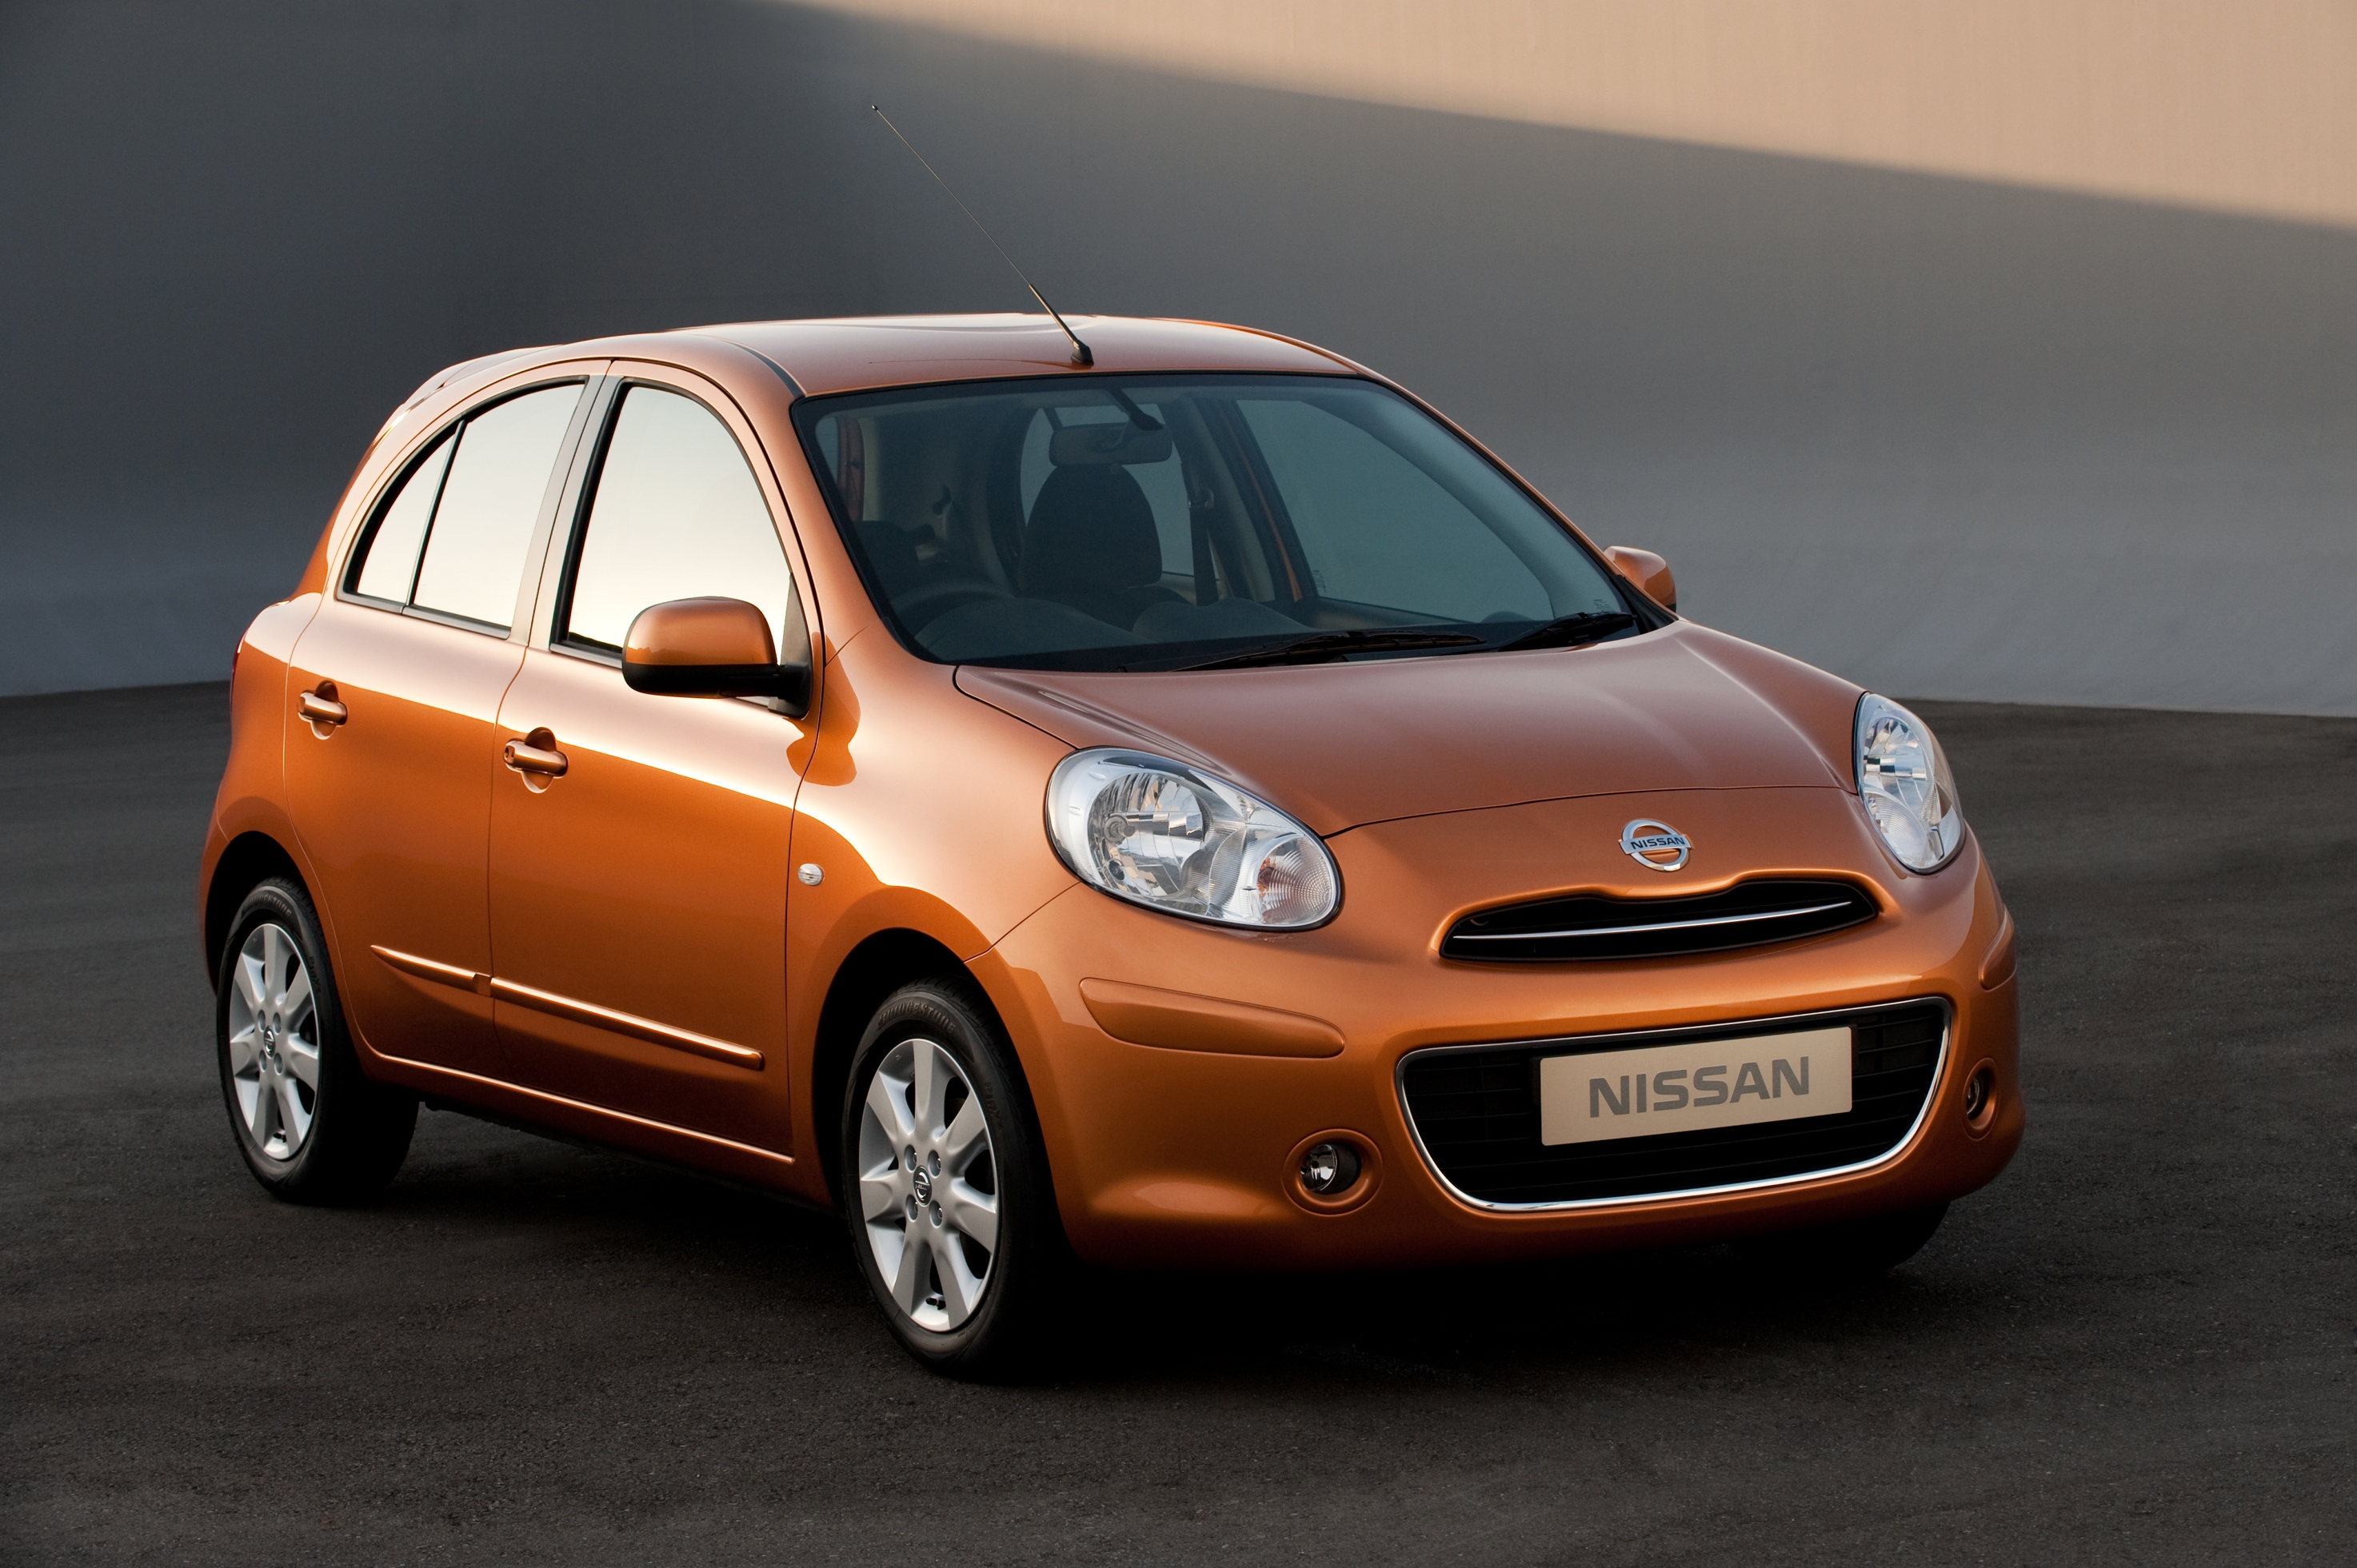 nissan micra car write ups. Black Bedroom Furniture Sets. Home Design Ideas